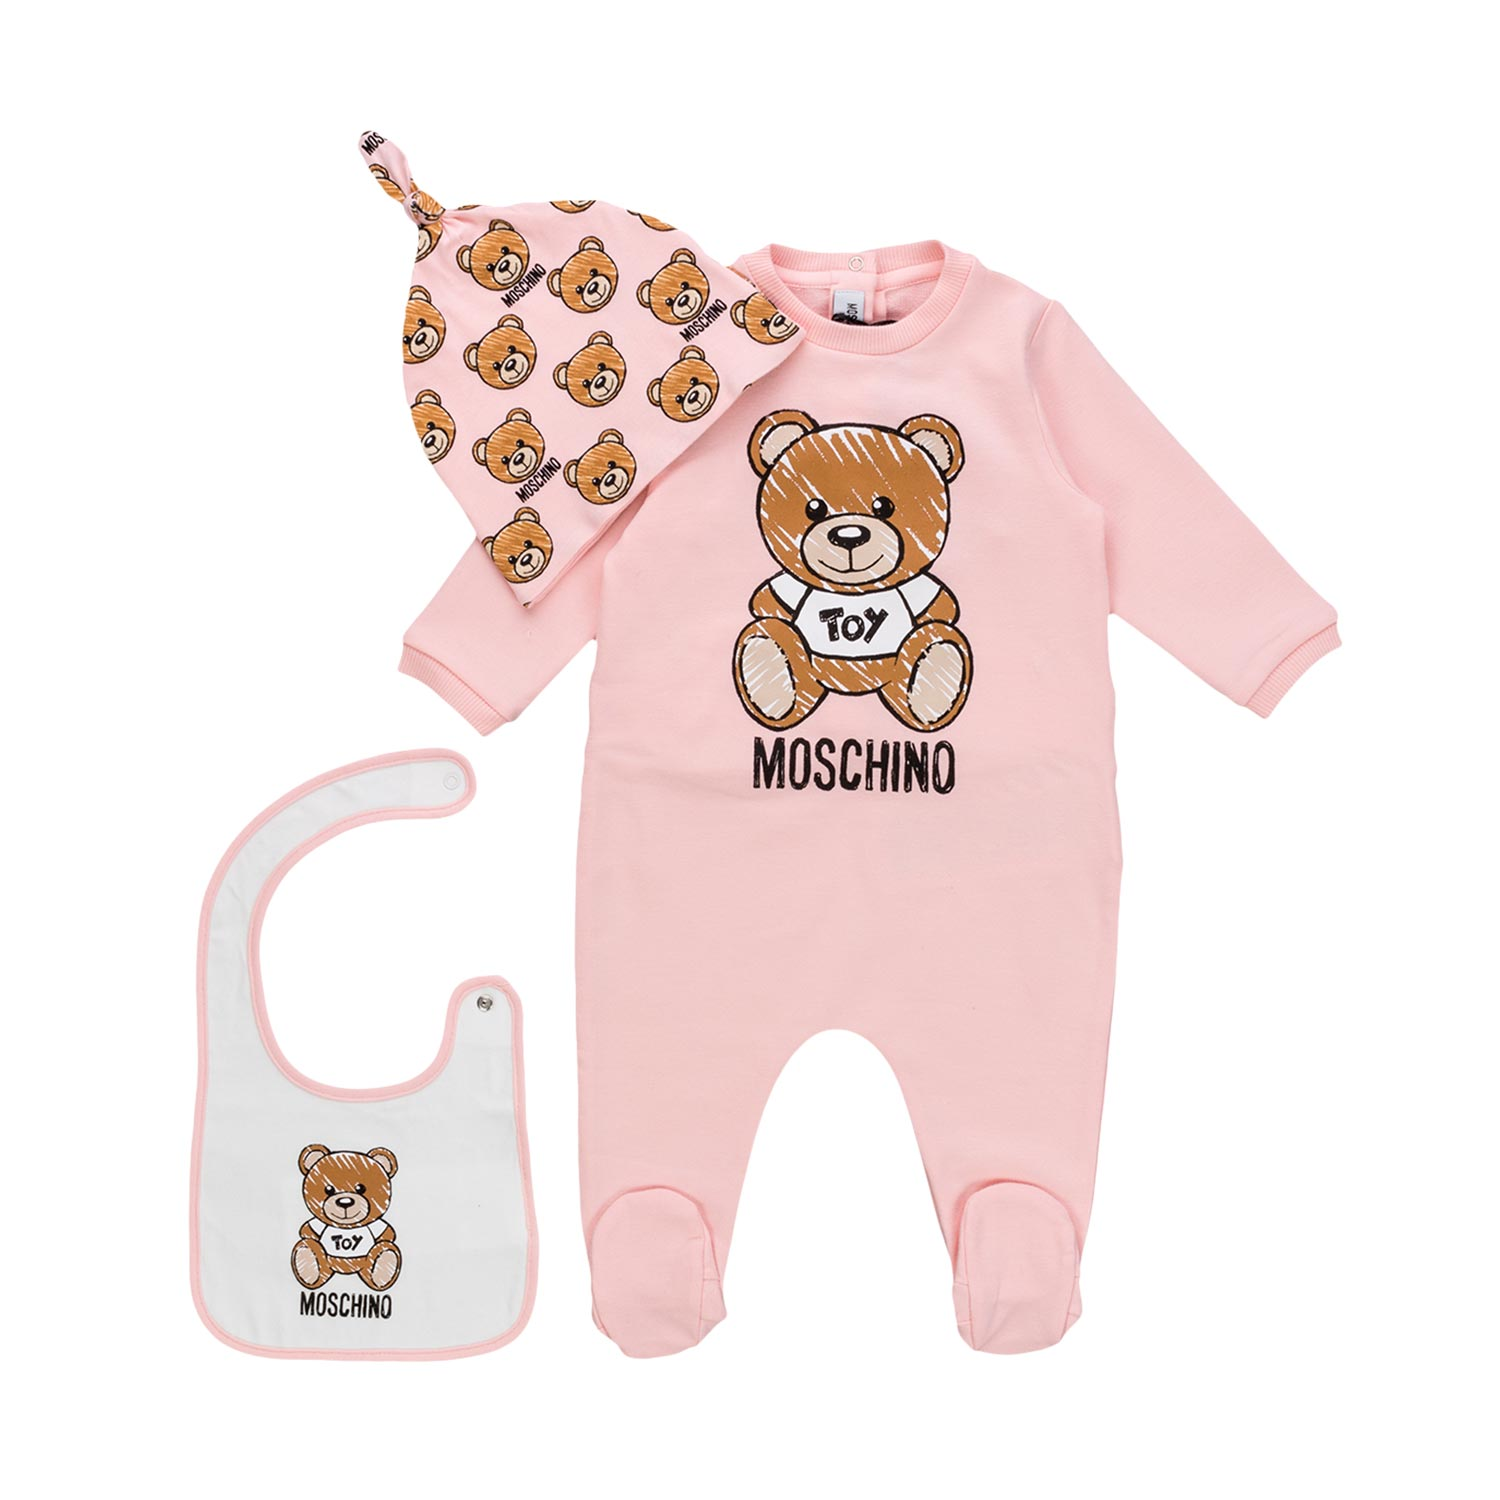 98abf5bbb Moschino - Gift Set For Baby Girls - annameglio.com shop online